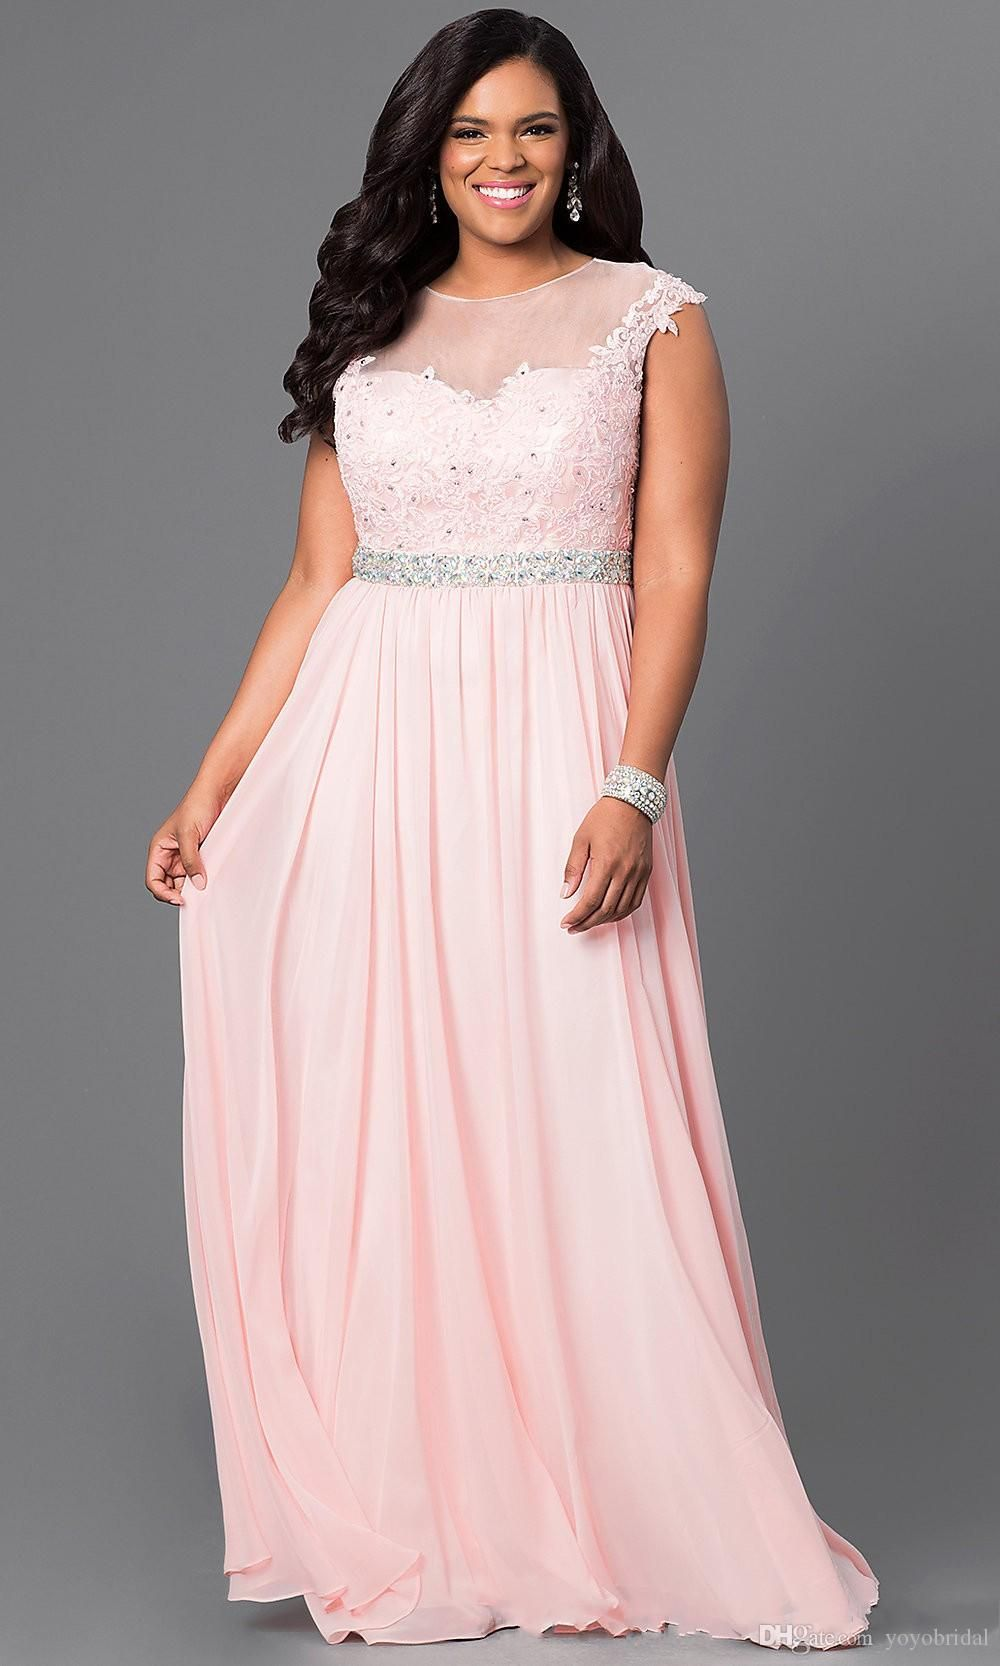 32a8954d6e2 Pink Light Purple Cheap Prom Evening Dresses Plus size Bateau Cap Short  Sleeves Chiffon Applique Long Pageant Formal Party Dress Gowns